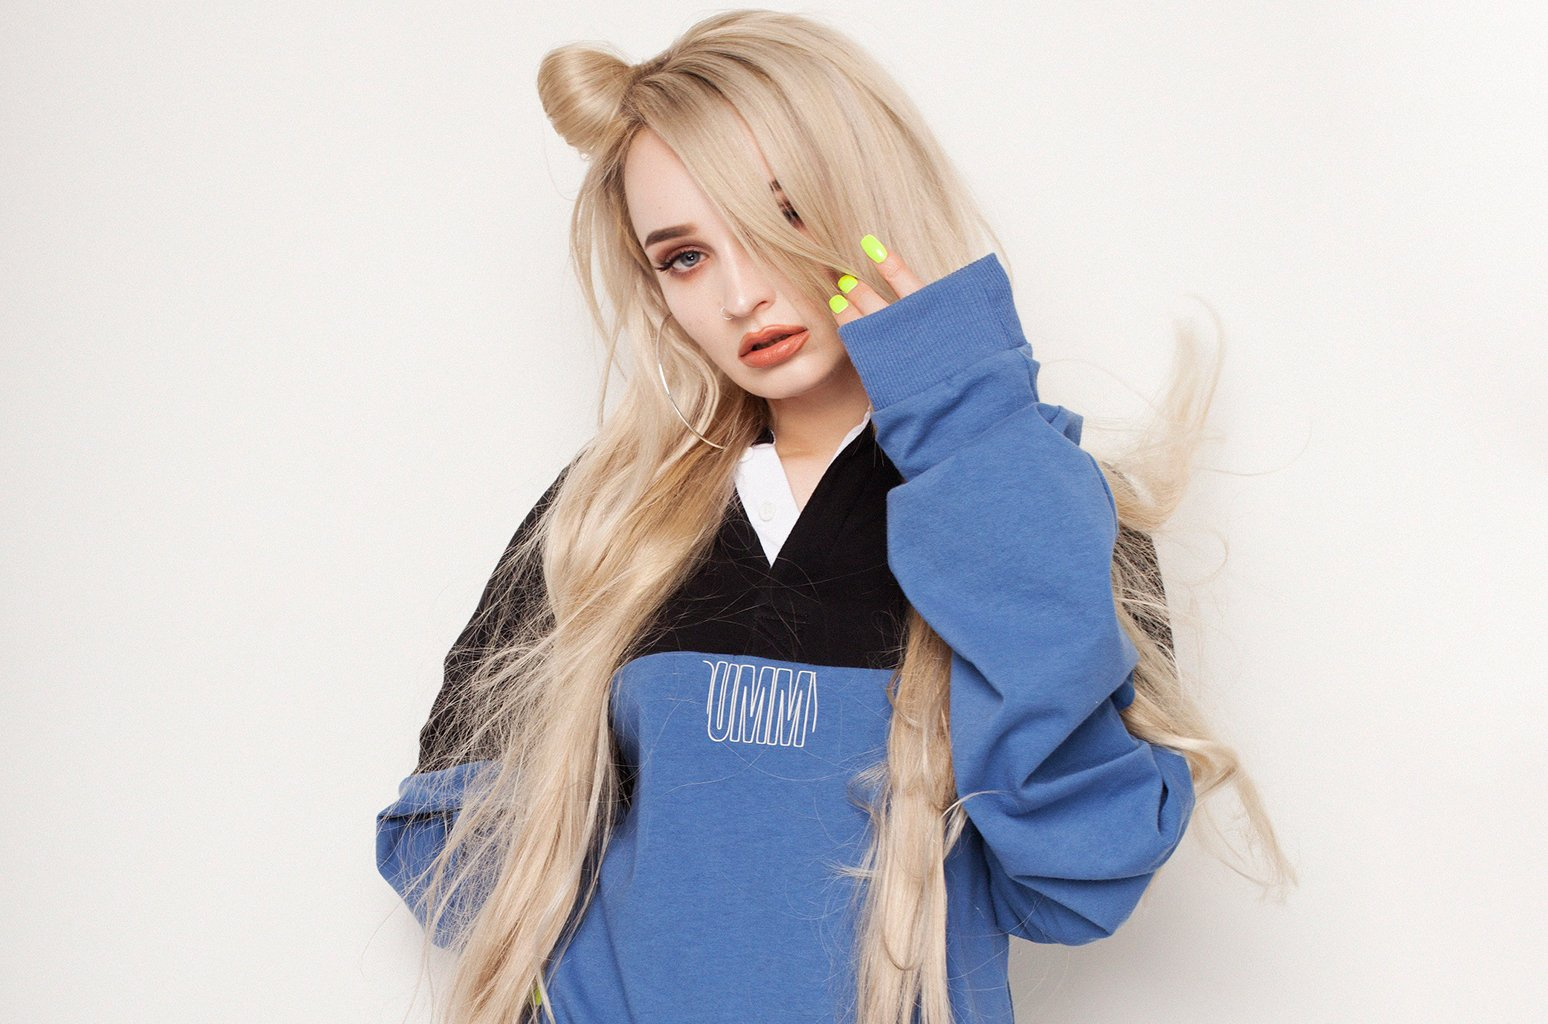 .@kimpetras releases hazy, hyper-feminine lyric video for 'Can't Do Better' https://t.co/faPQGqf9RK https://t.co/Dag3AJQmnP